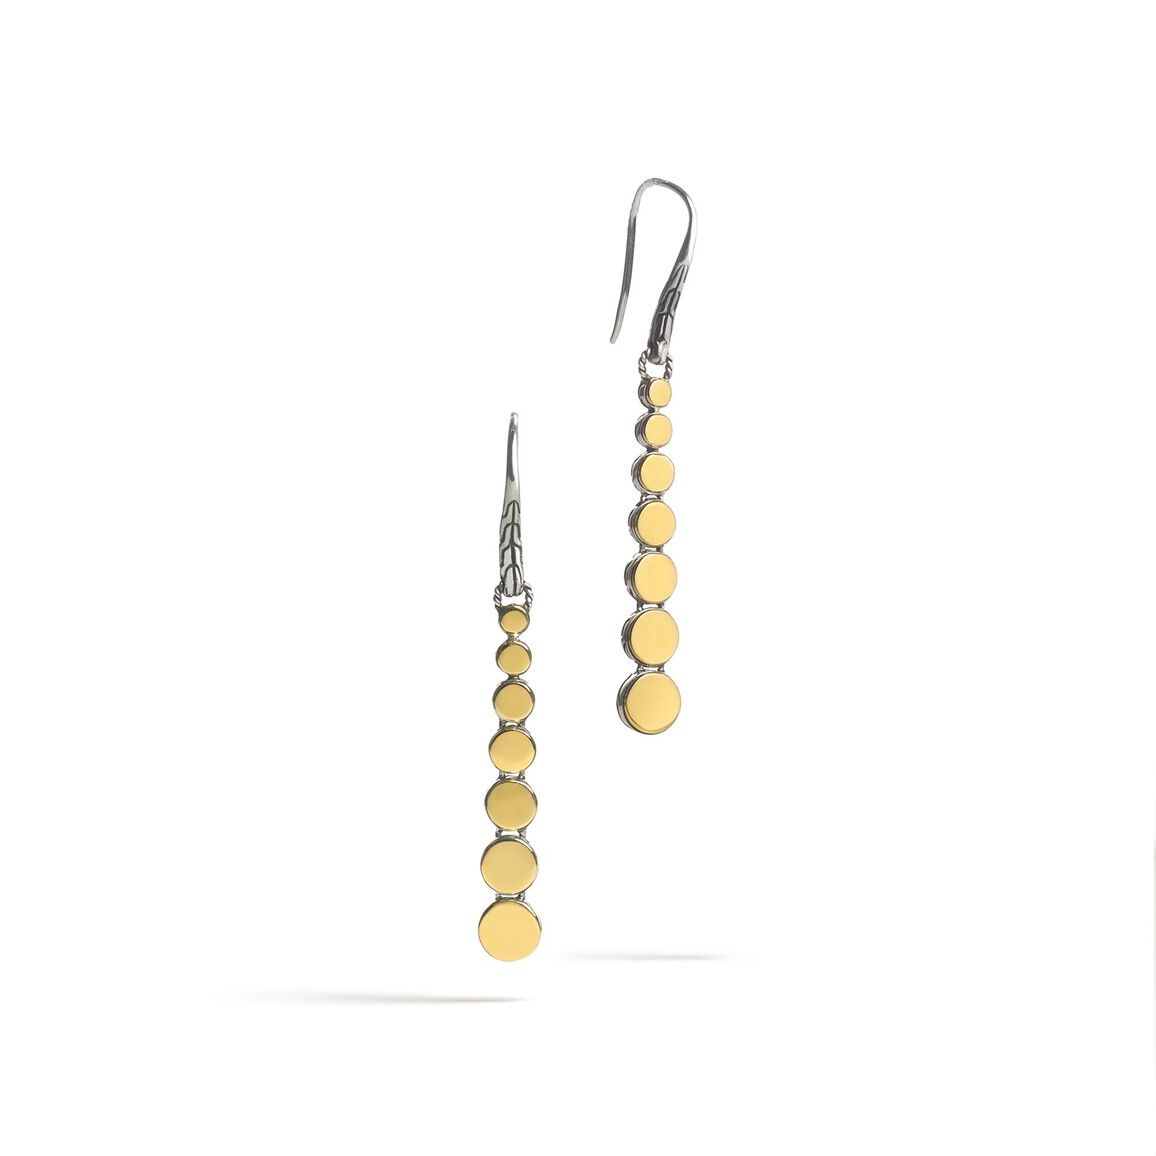 Dot Linear Drop Earring in Silver and 18K Gold